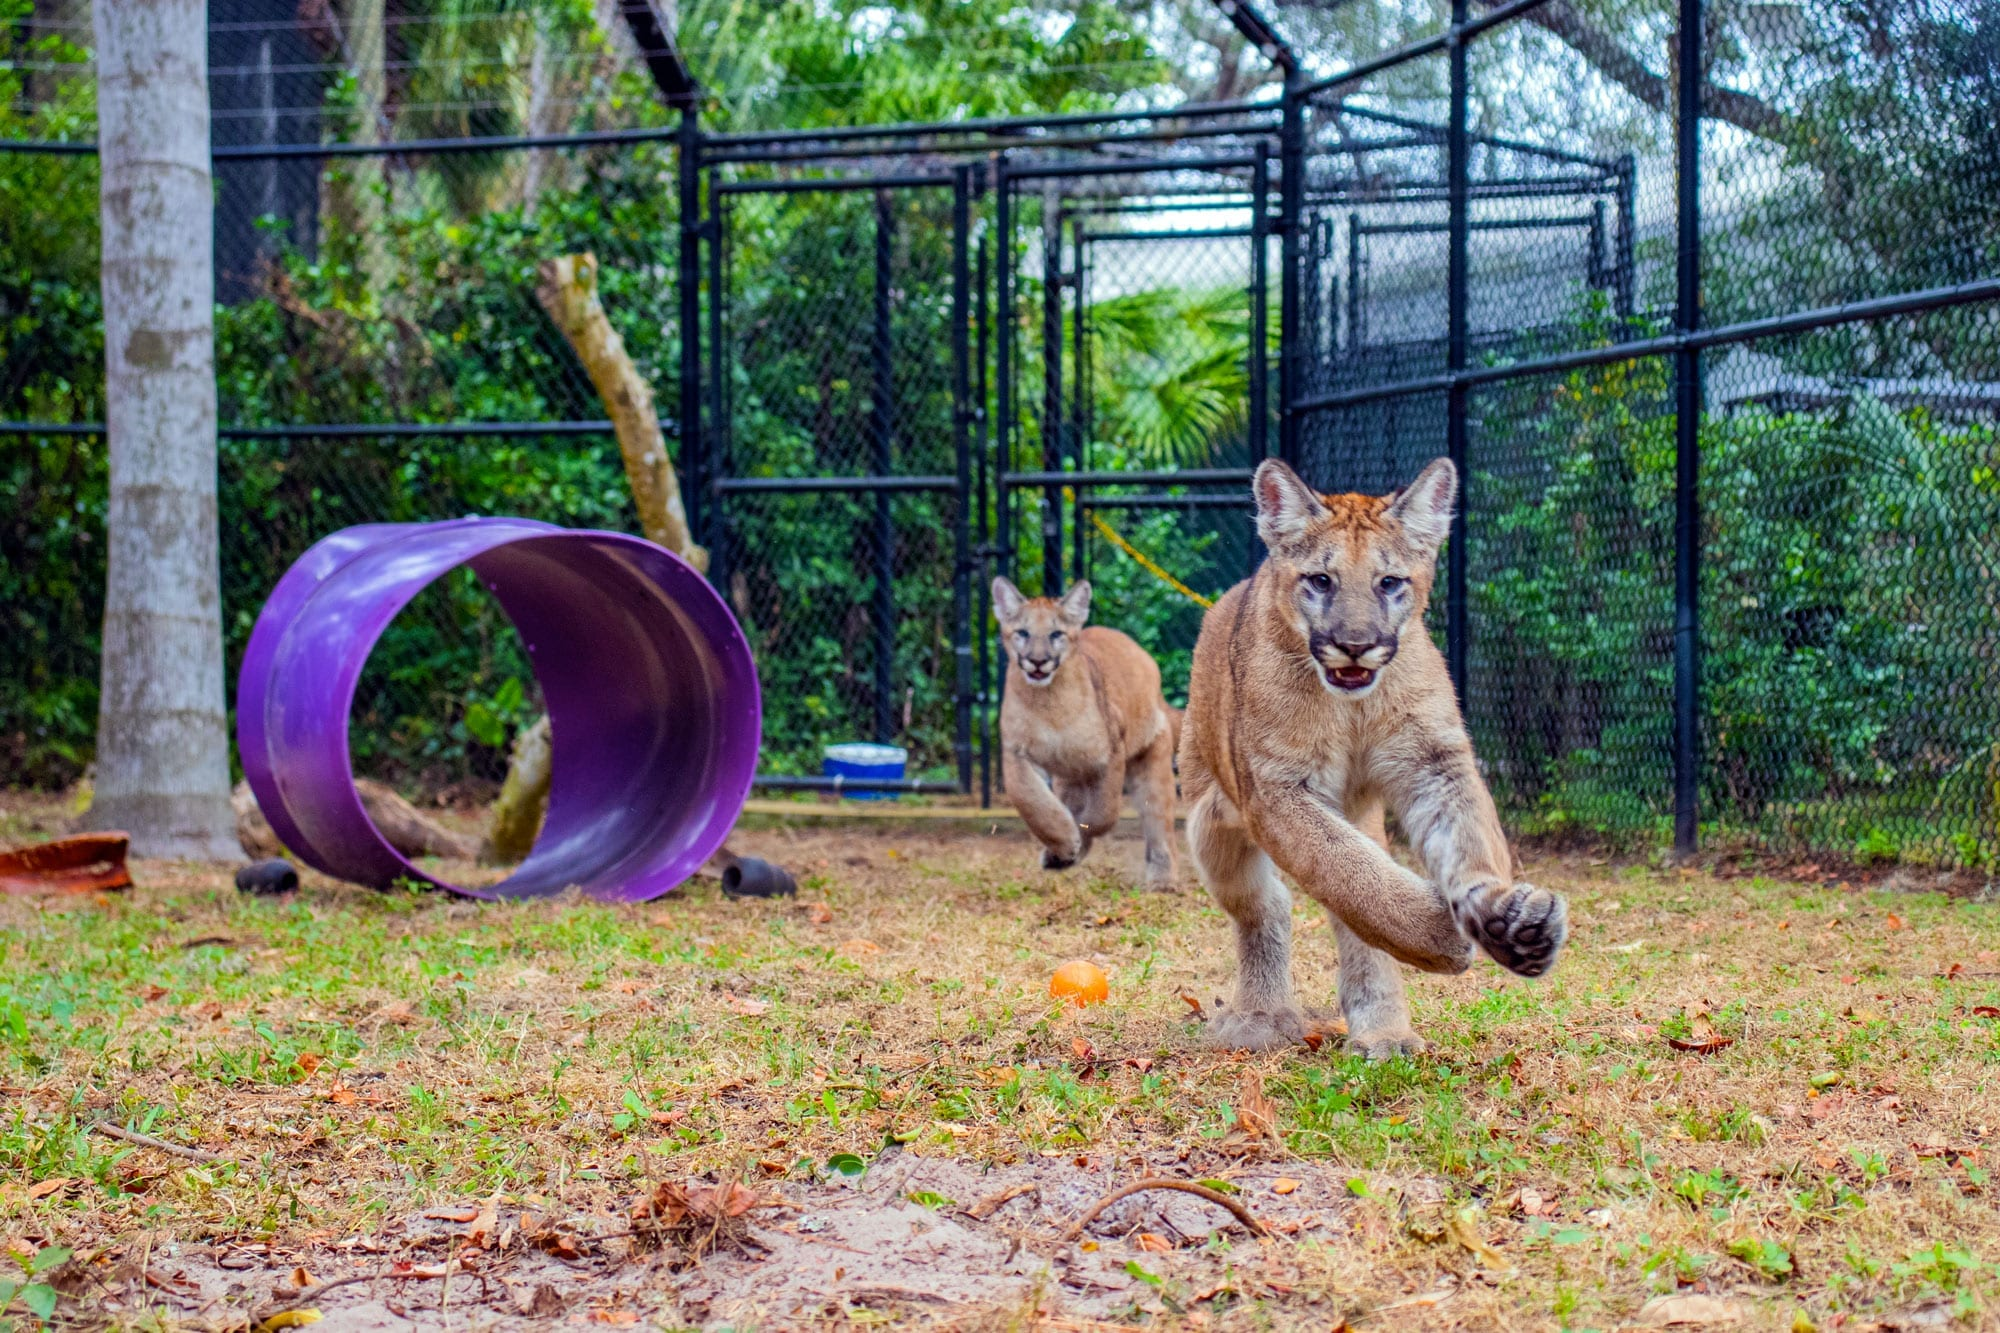 Two adorable Panther Kittens Playing after being rescued by FWC and brought to ZooTampa